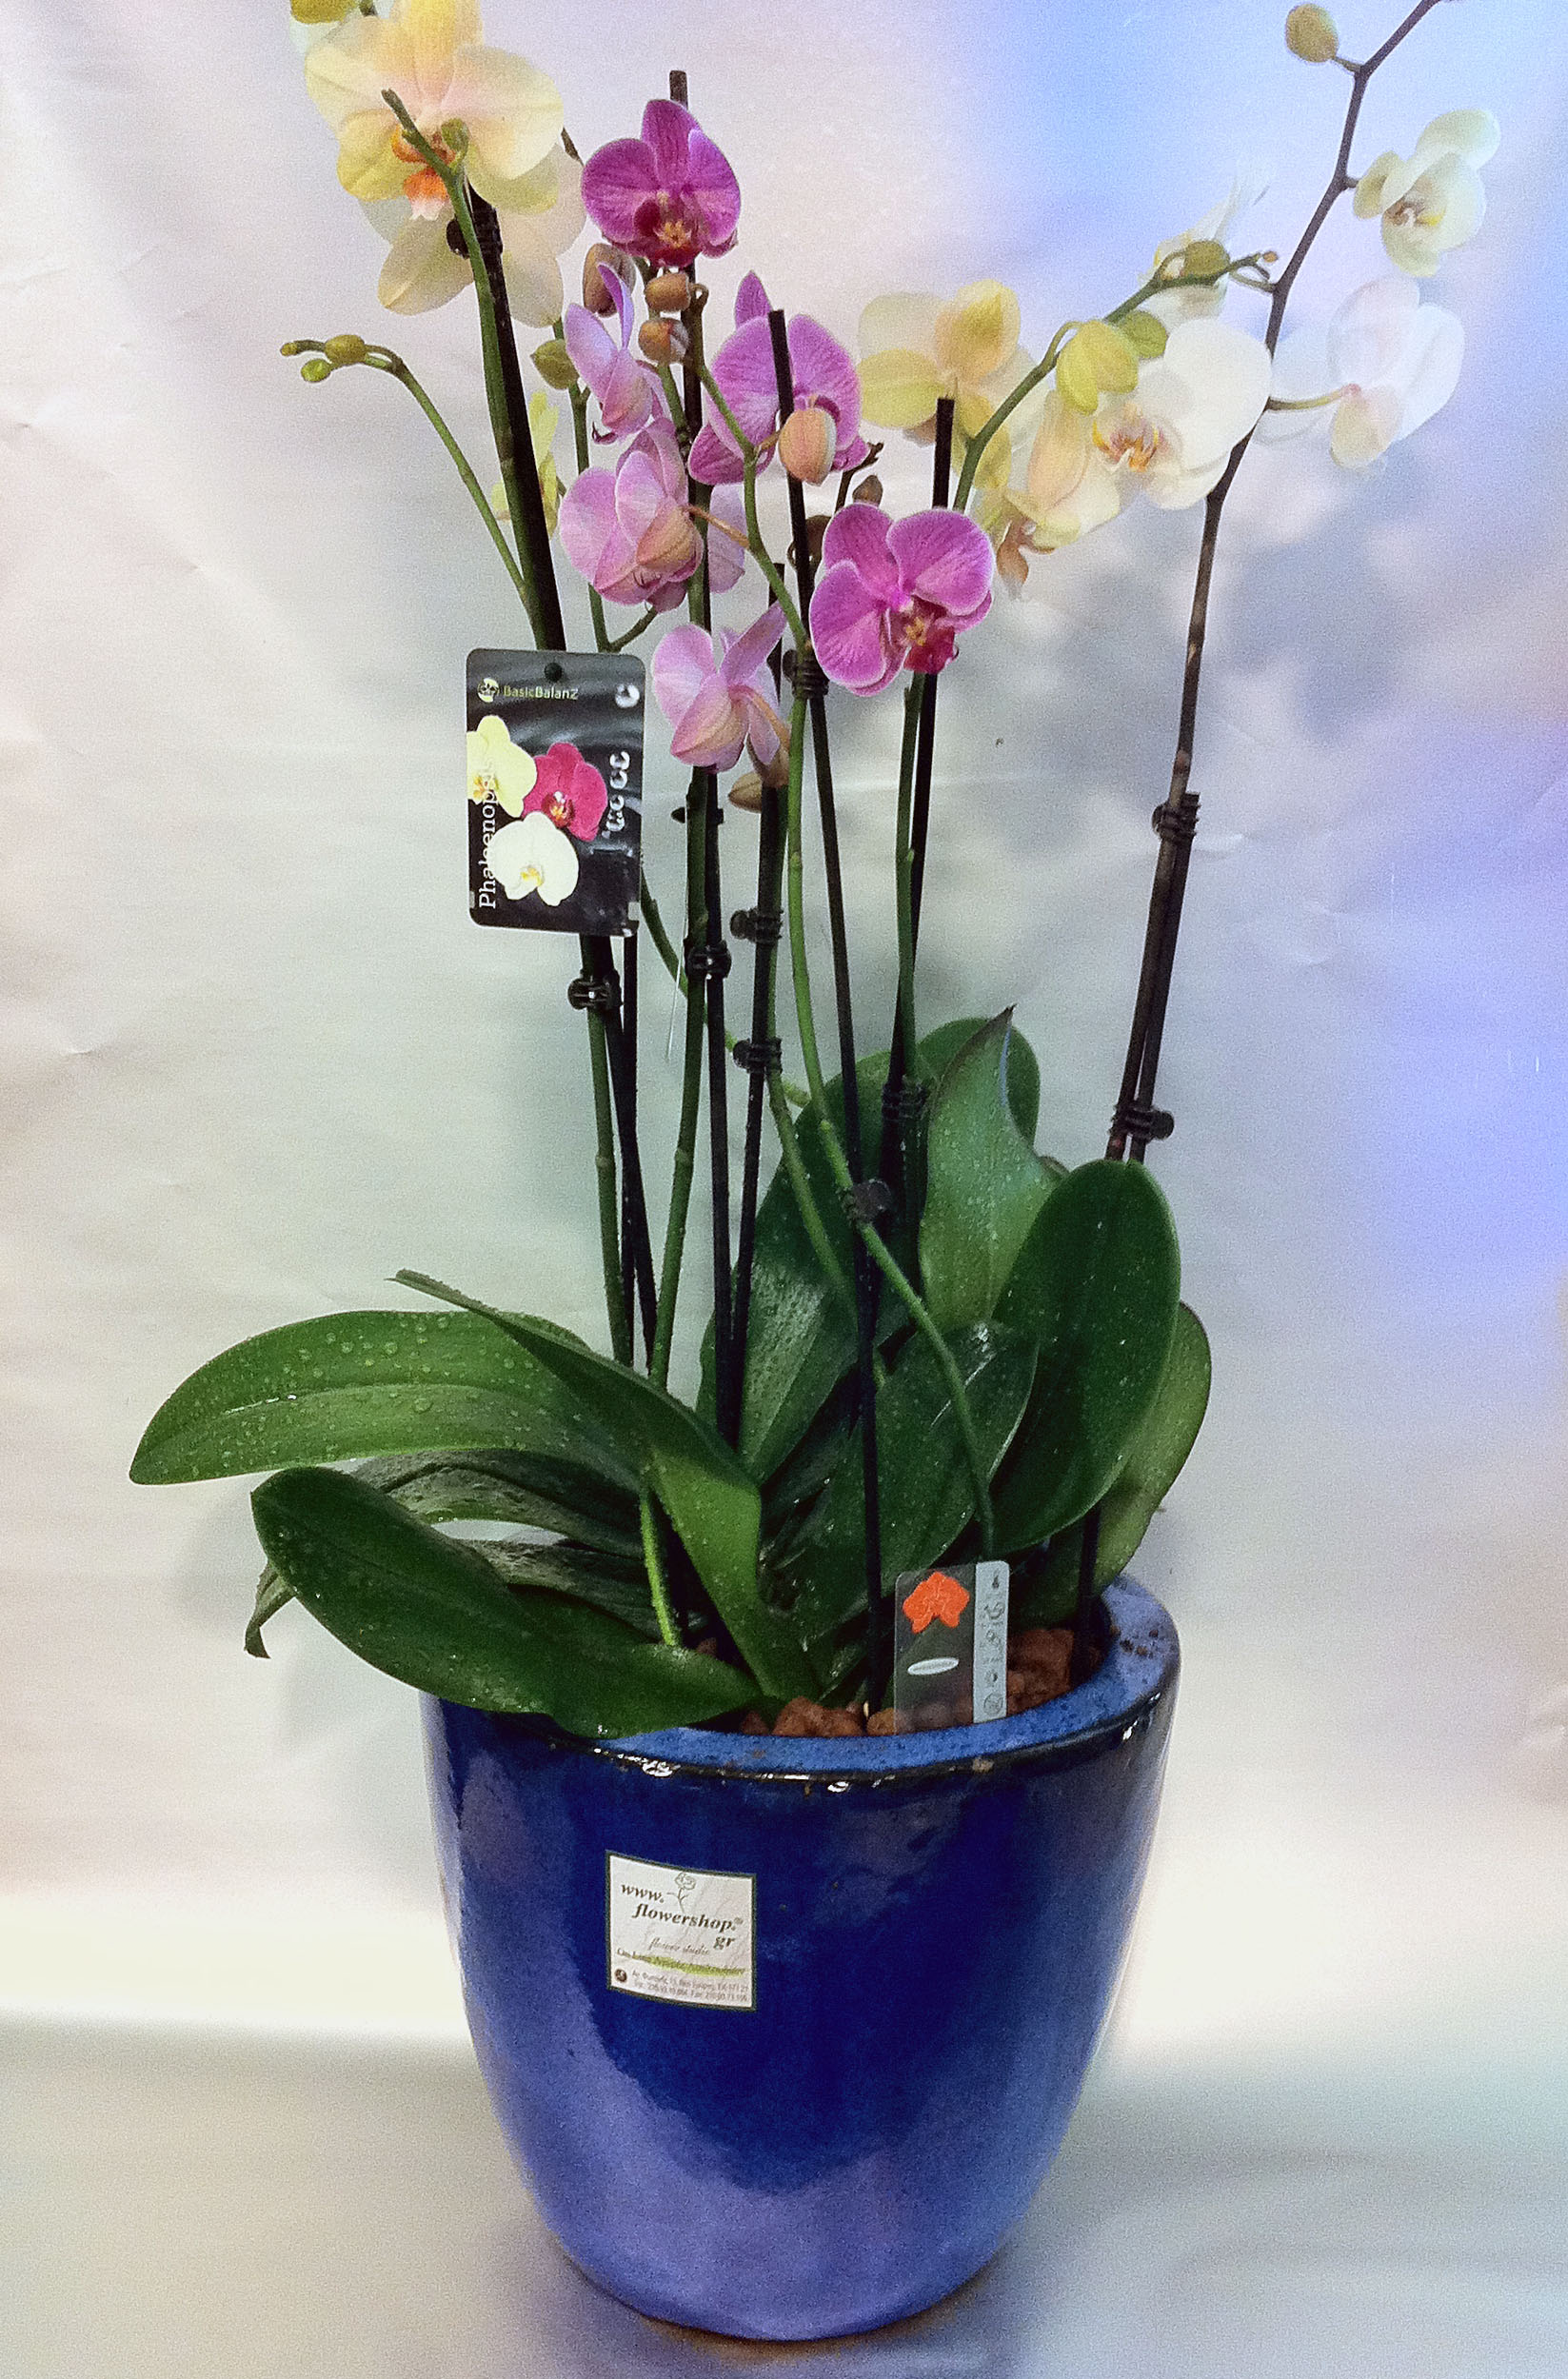 Phalaenopsis orchid plants in quality design vasepot  3 two spiked plants